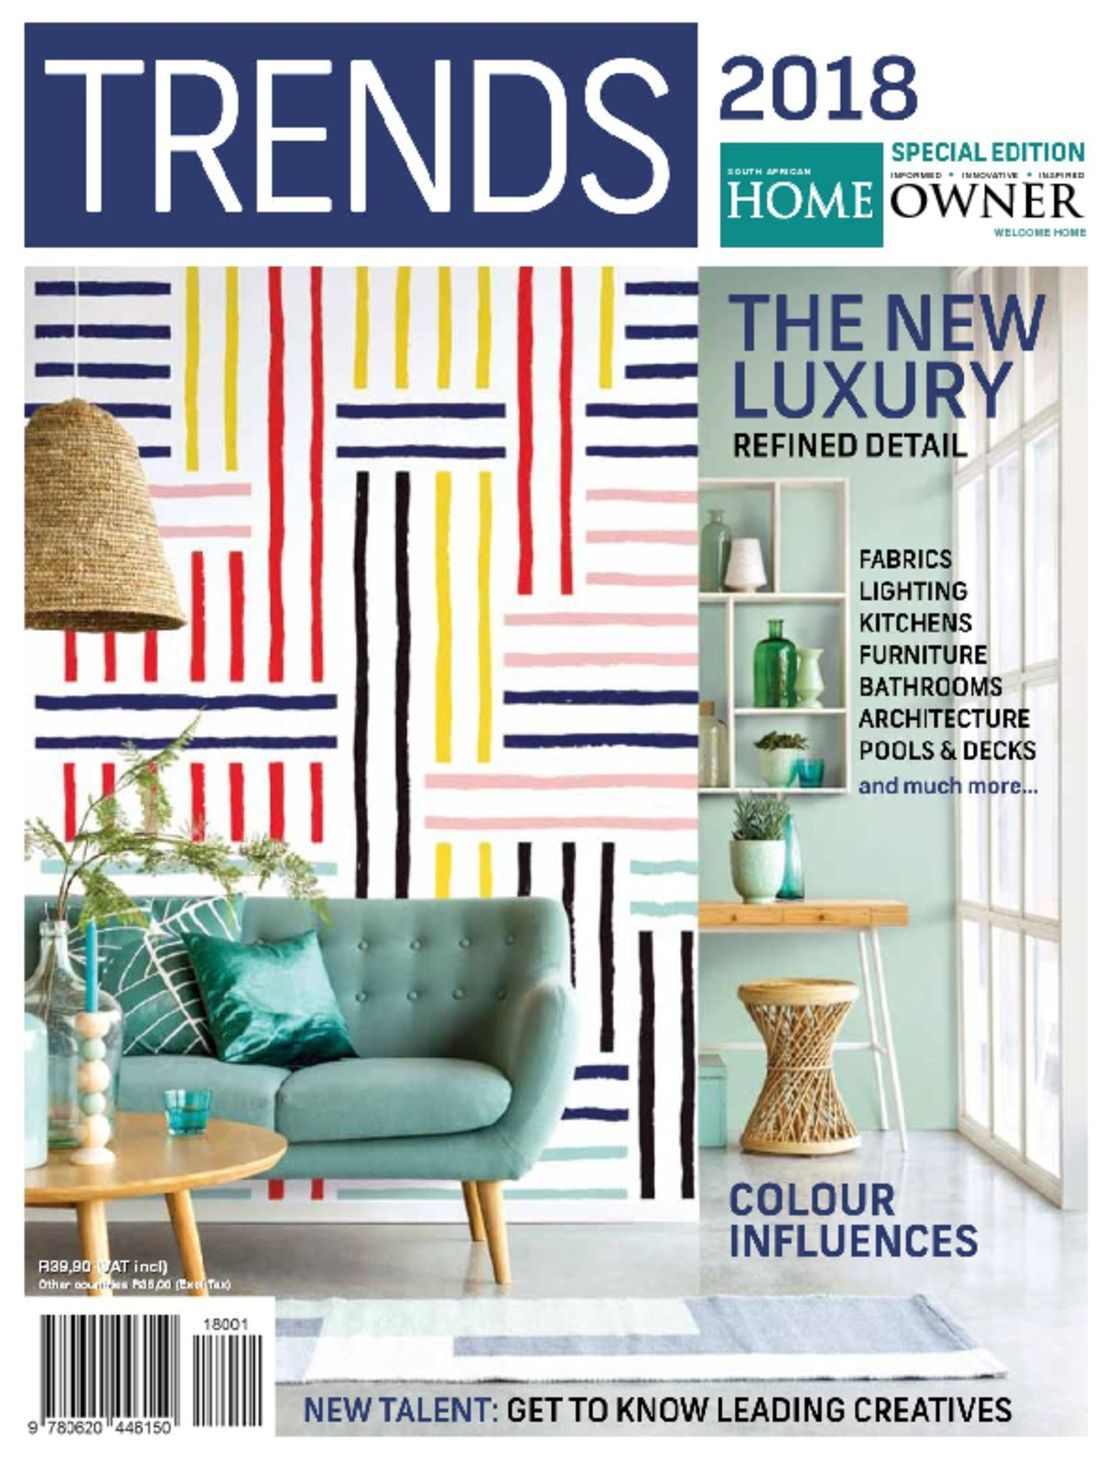 Trends SA Home Owner Special Edition Digital